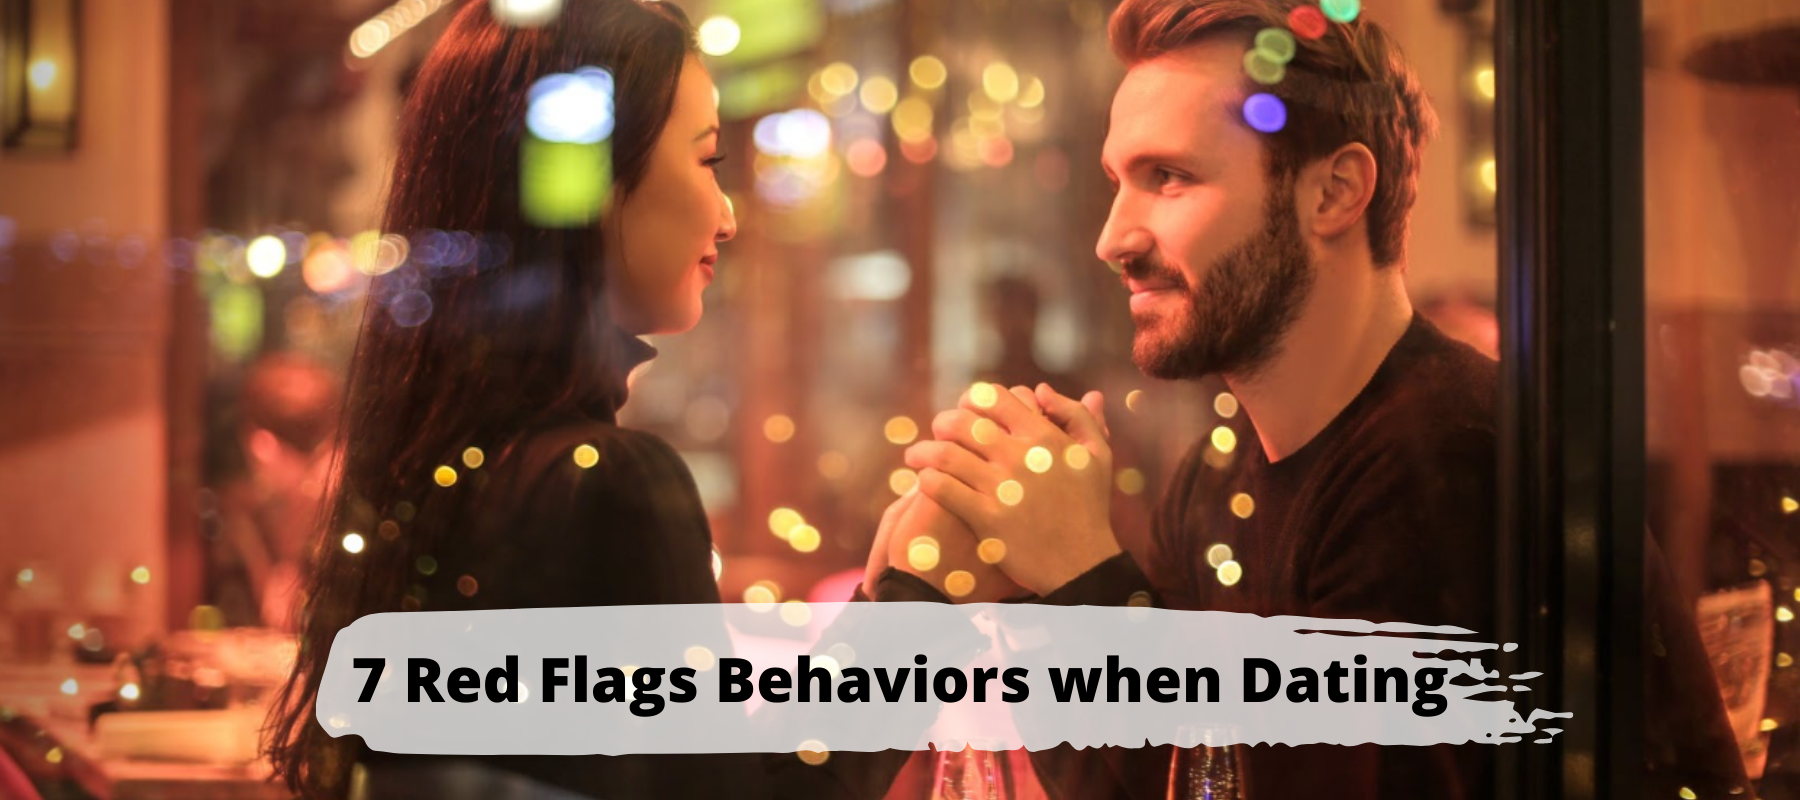 7 Red Flags Behaviors When Dating